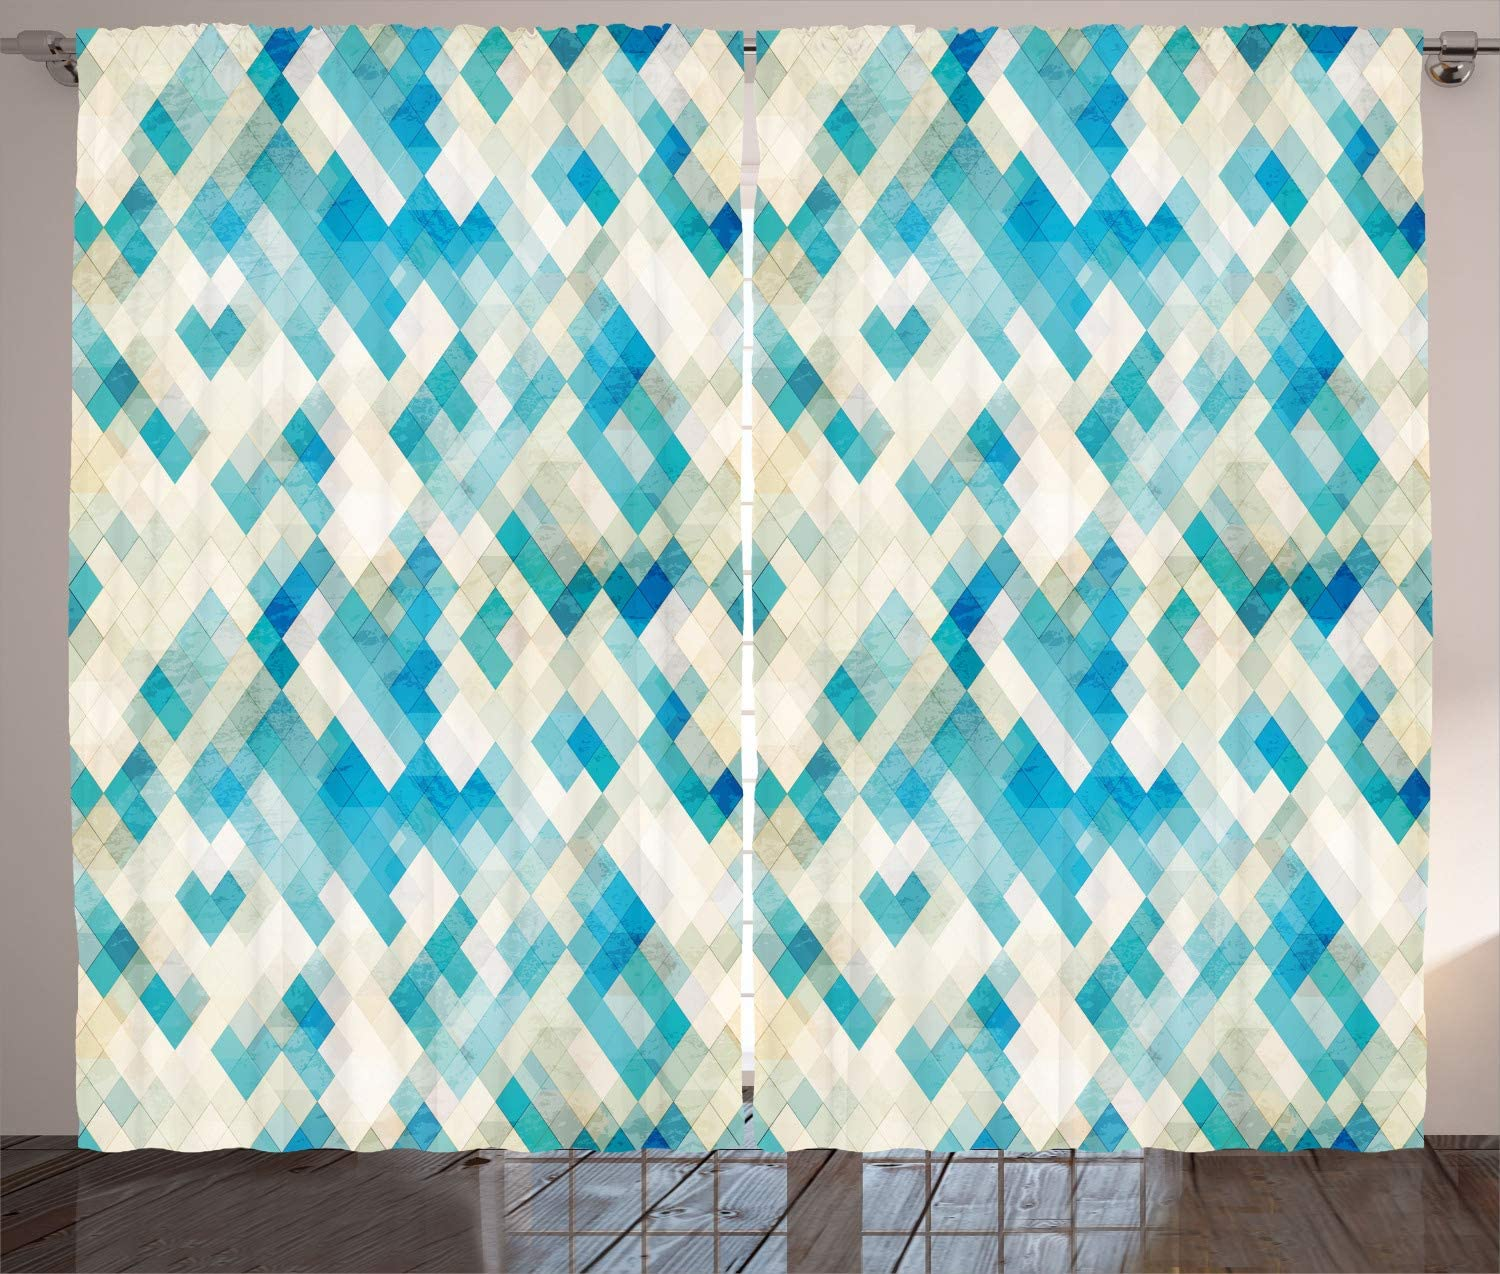 """Ambesonne Geometric Curtains, Blue Themed Hexagonal Shaped Abstract Modern Grunge Art Print, Living Room Bedroom Window Drapes 2 Panel Set, 108"""" X 90"""", Turquoise White"""